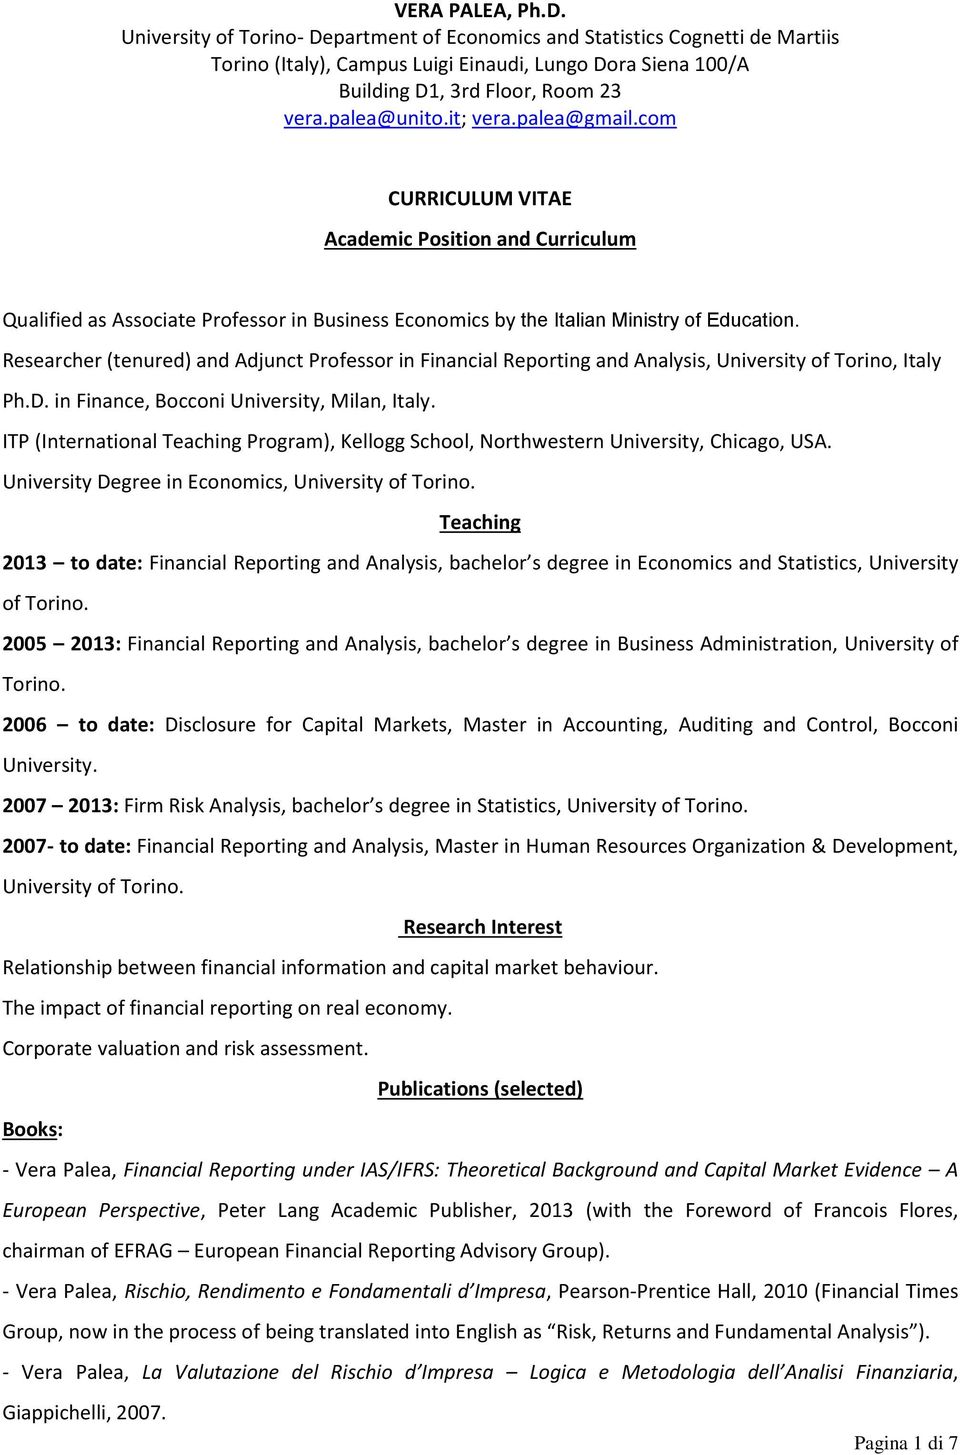 Researcher (tenured) and Adjunct Professor in Financial Reporting and Analysis, University of Torino, Italy Ph.D. in Finance, Bocconi University, Milan, Italy.